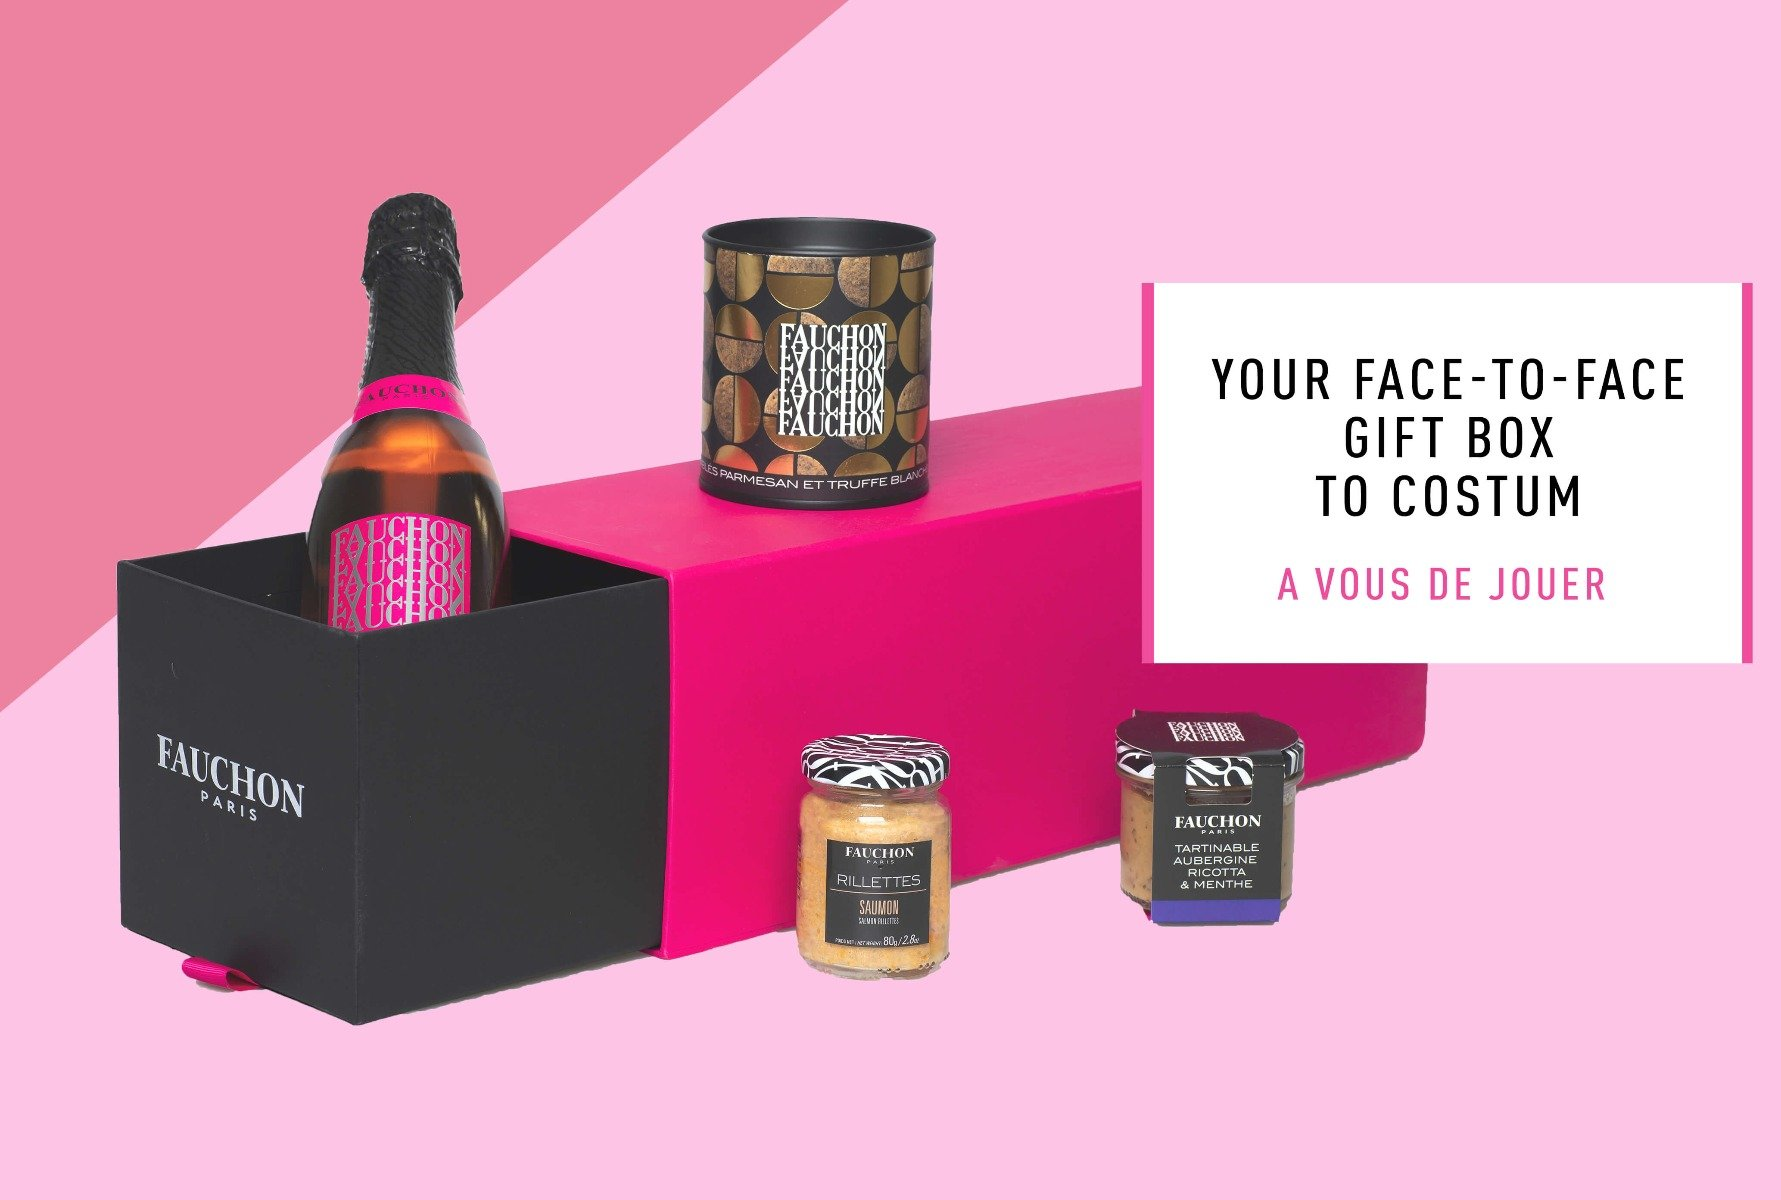 Face-to-face gift box